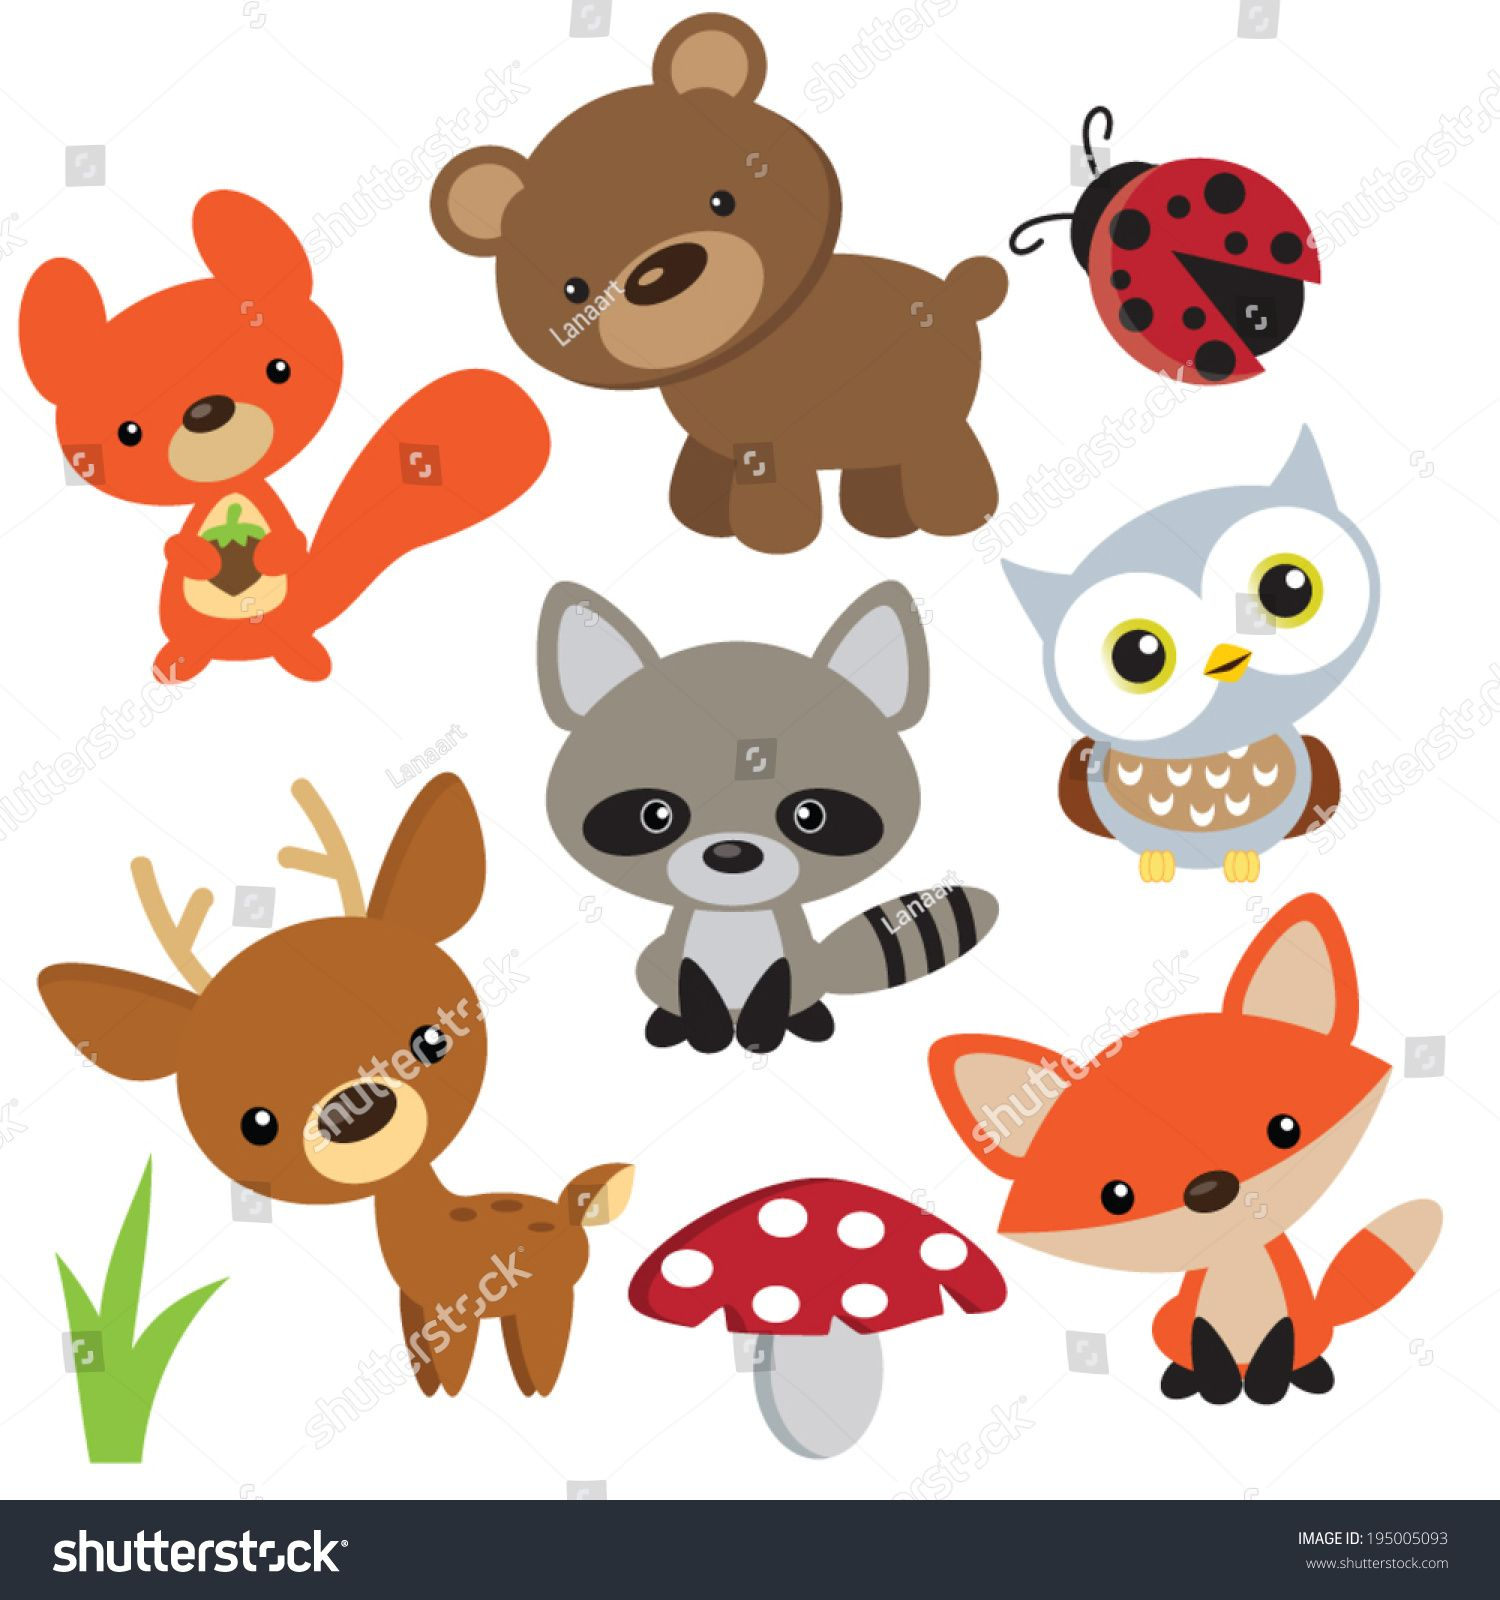 Image Shutterstock Com Z Stock Vector Forest Animals Vector